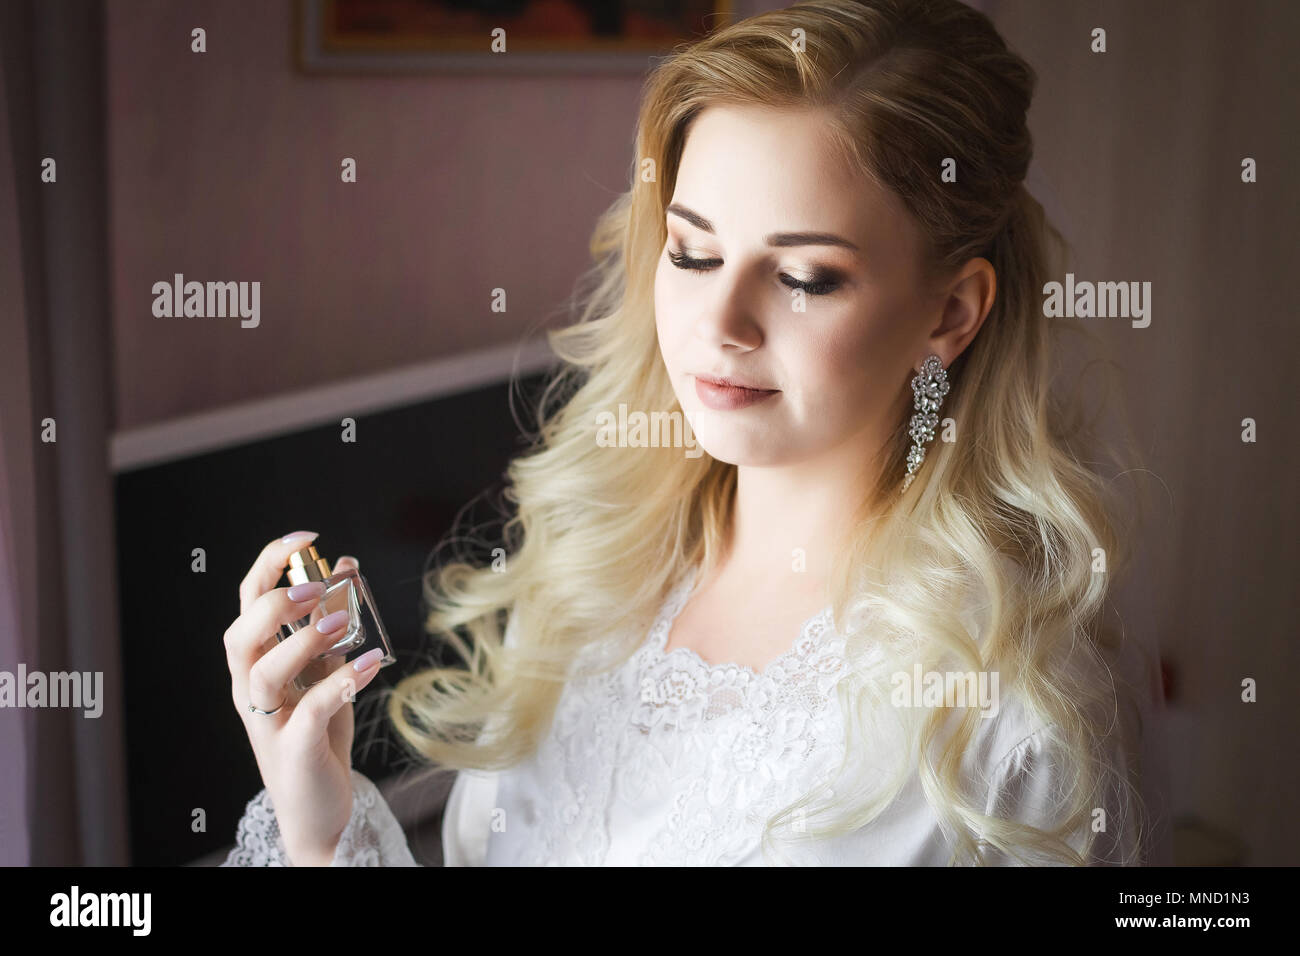 bride holding in hands a bottle of luxury perfume - Stock Image